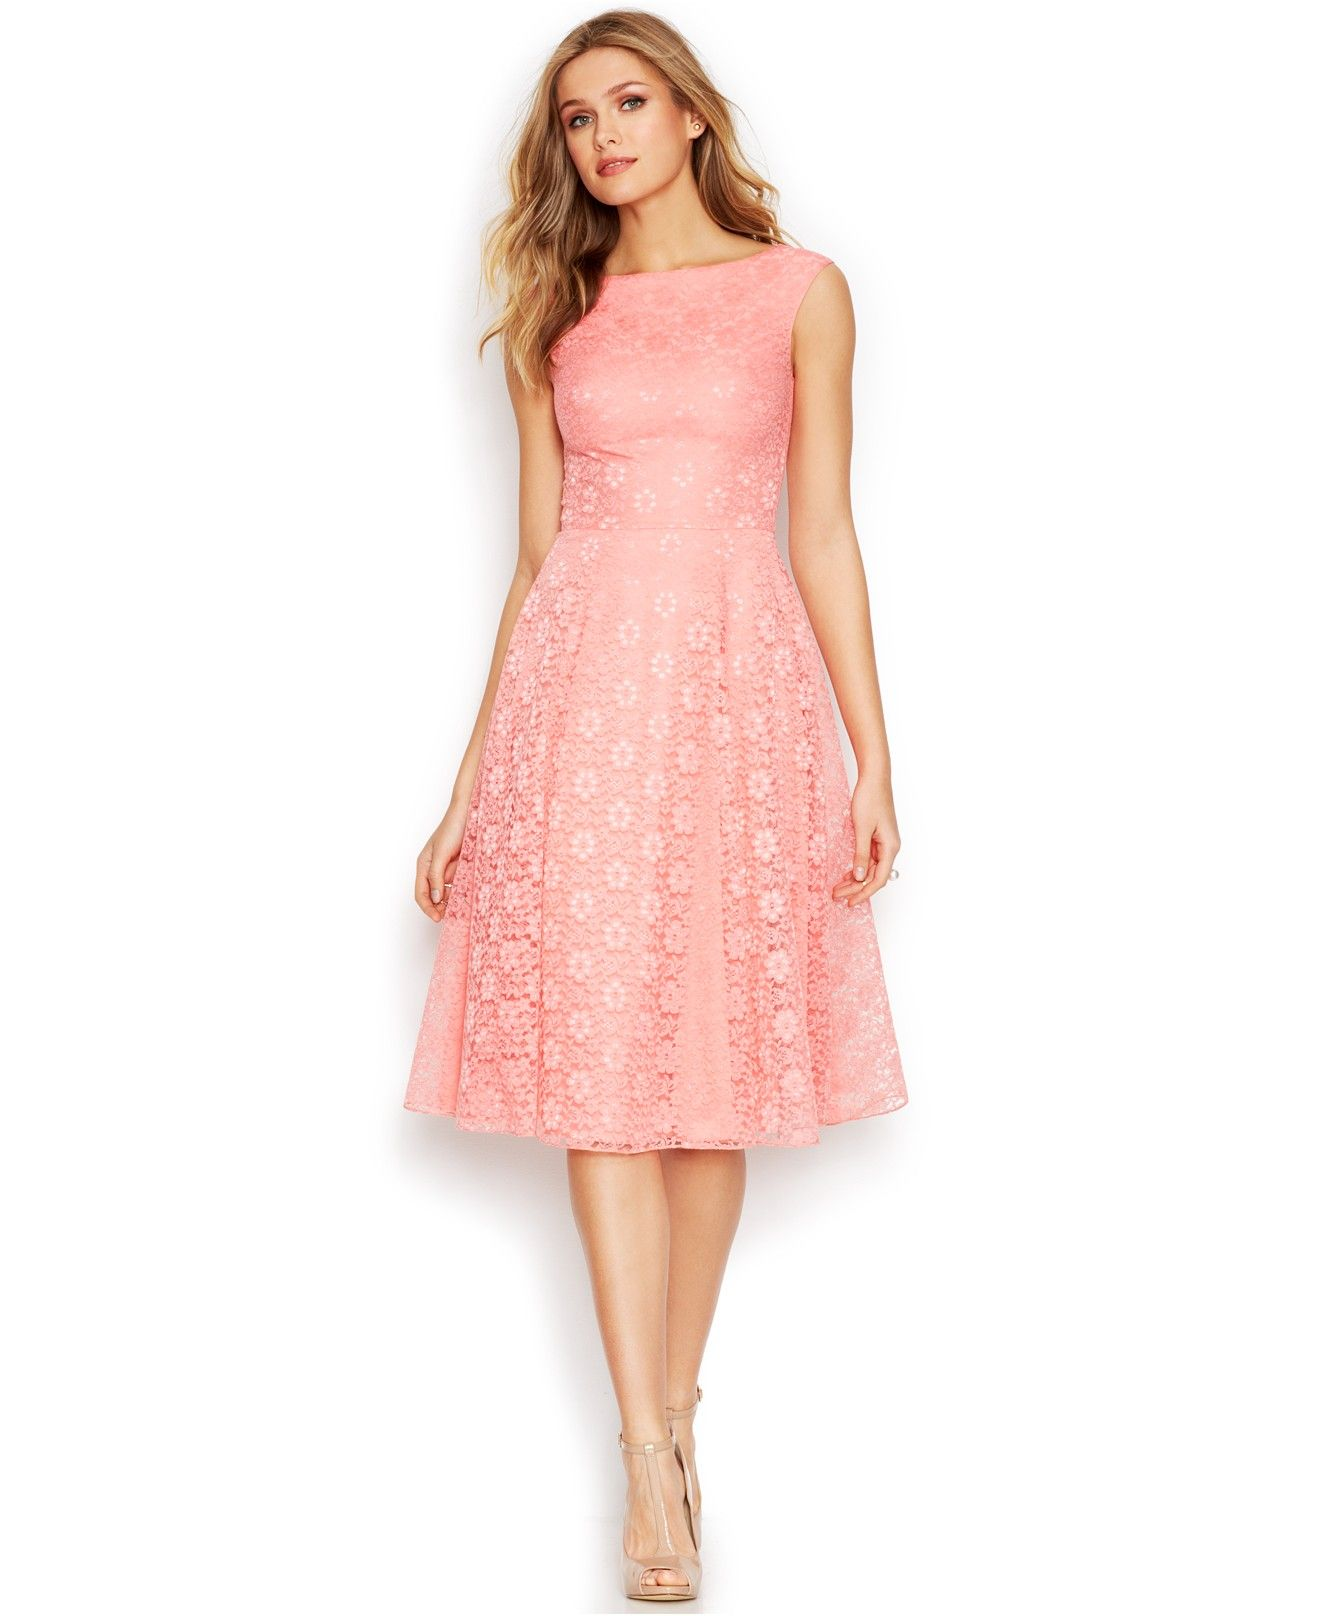 Betsey Johnson Floral-Lace Tea-Length Dress - Bridal Shower - Women ...